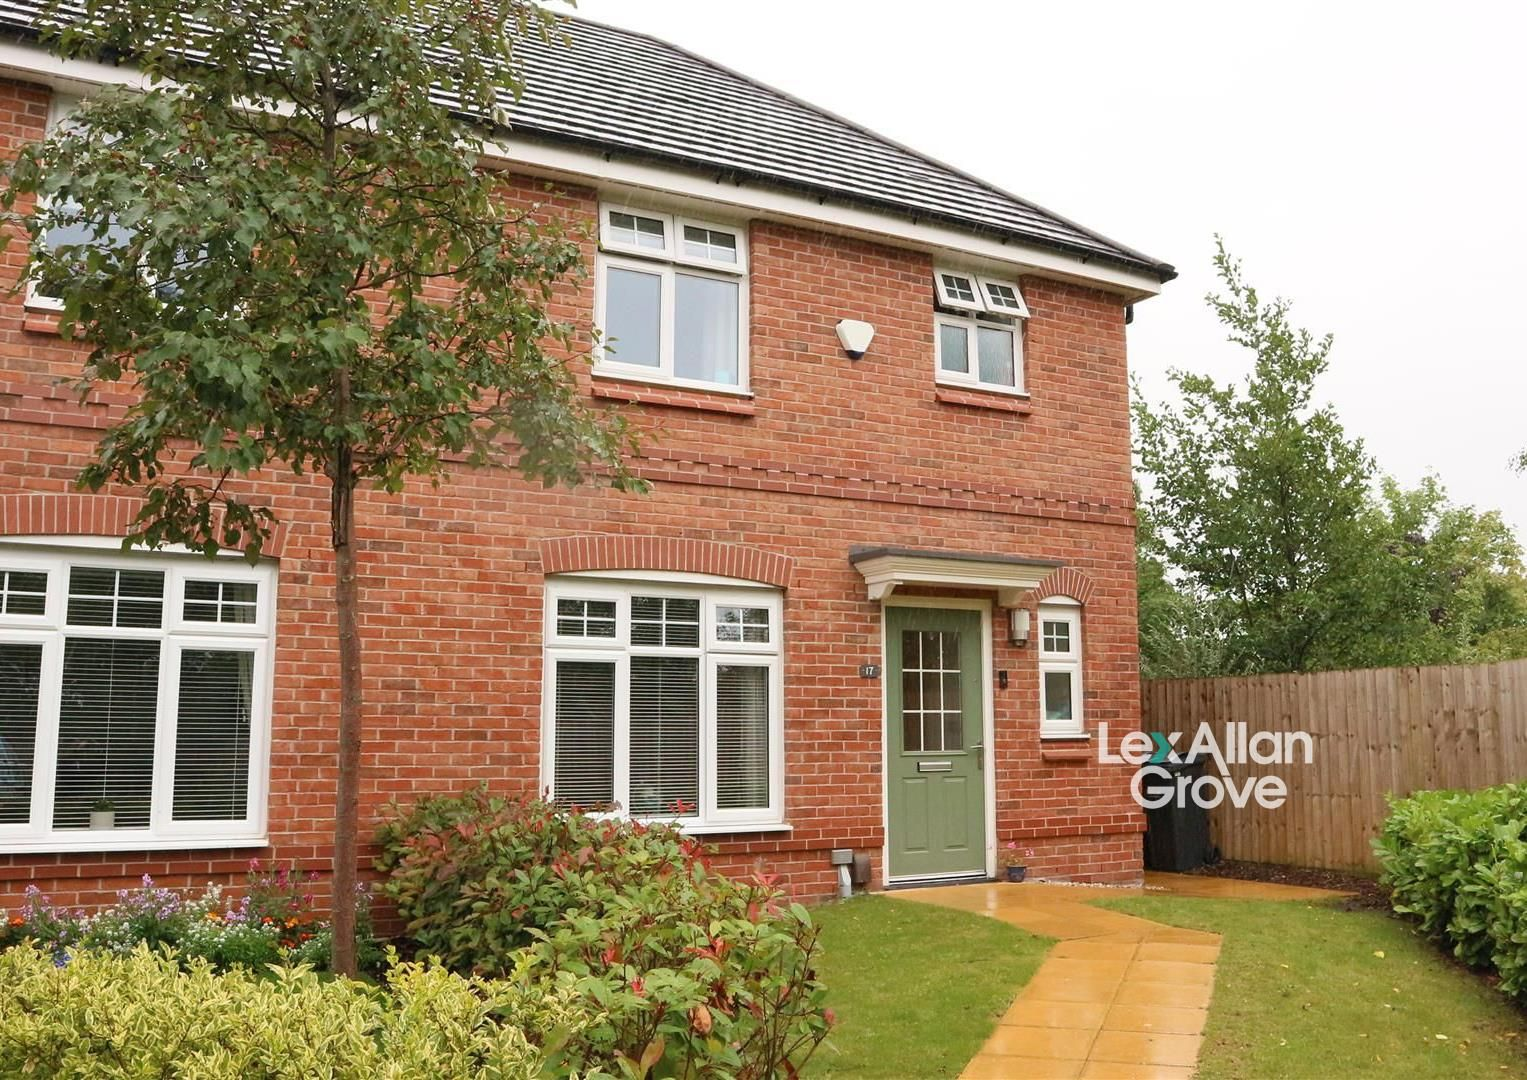 3 bed semi-detached for sale, B64